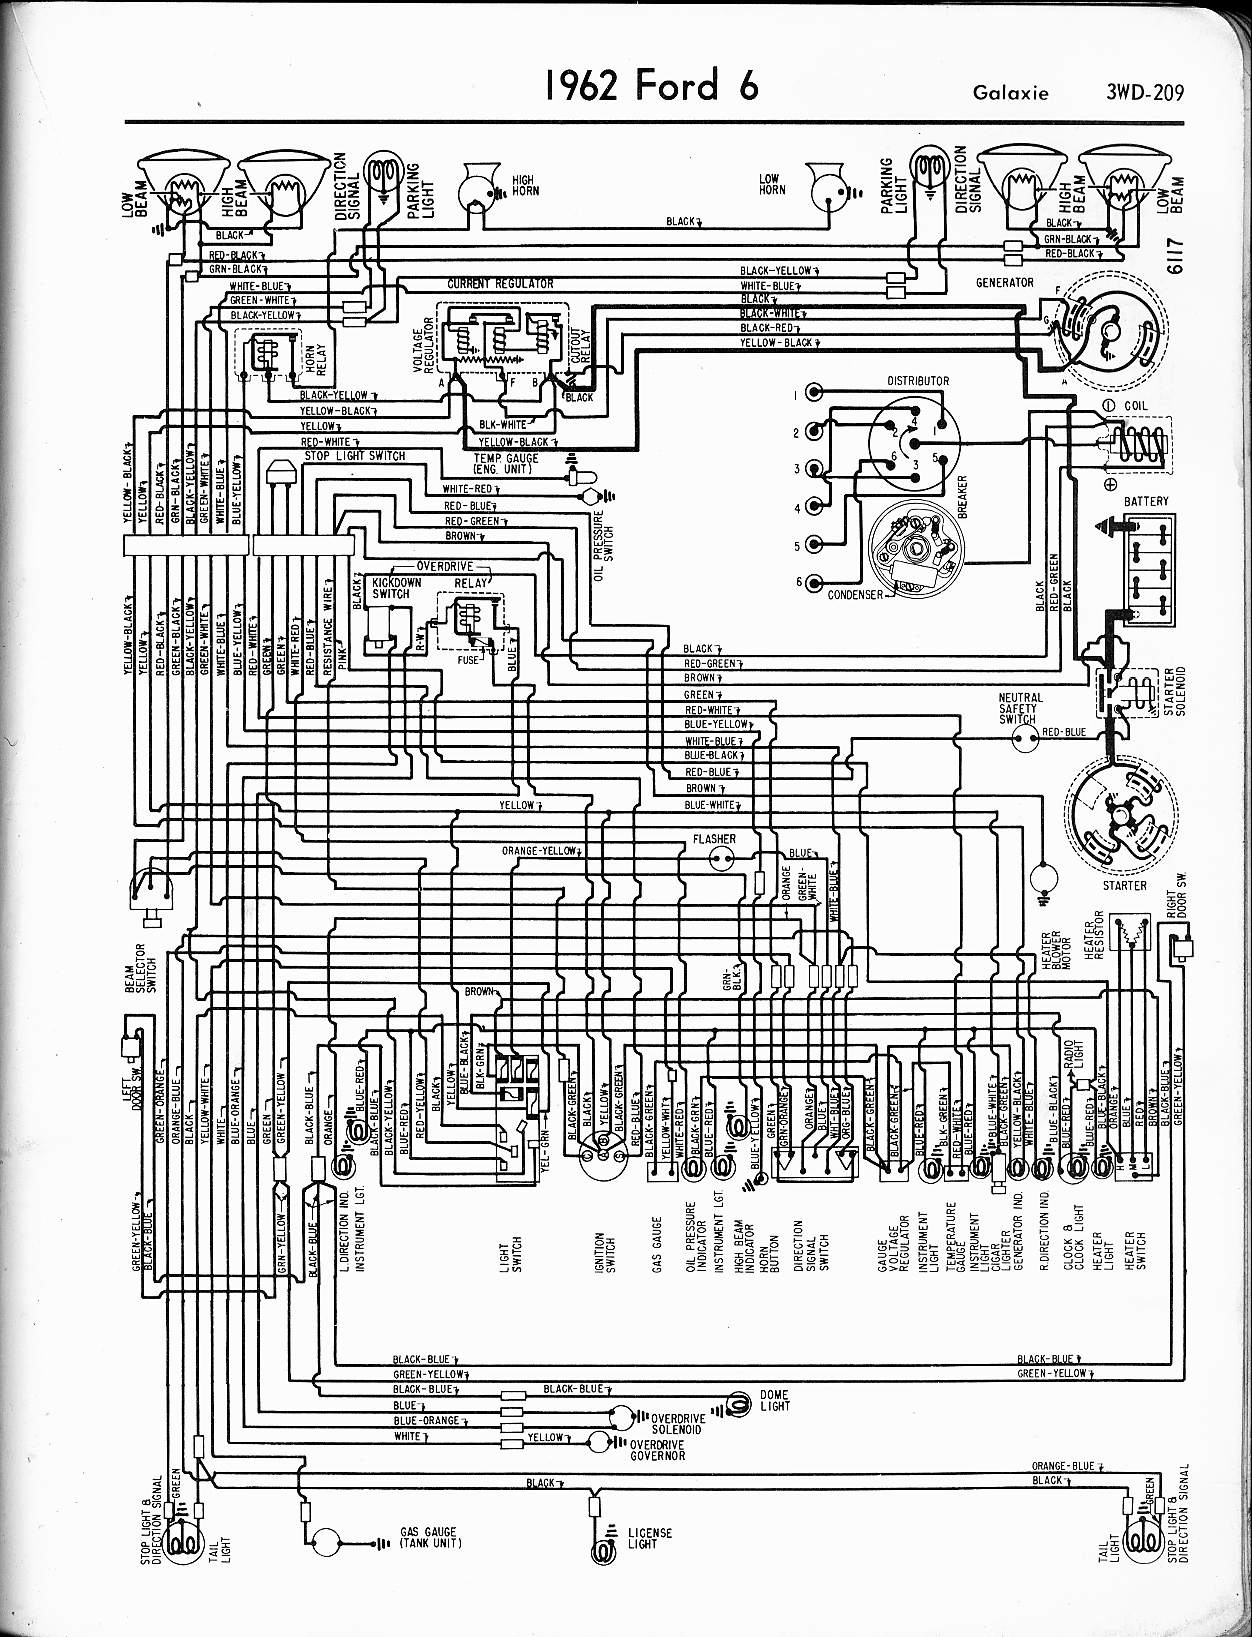 Ford Fairlane Torino Wiring Diagrams | Wiring Liry on